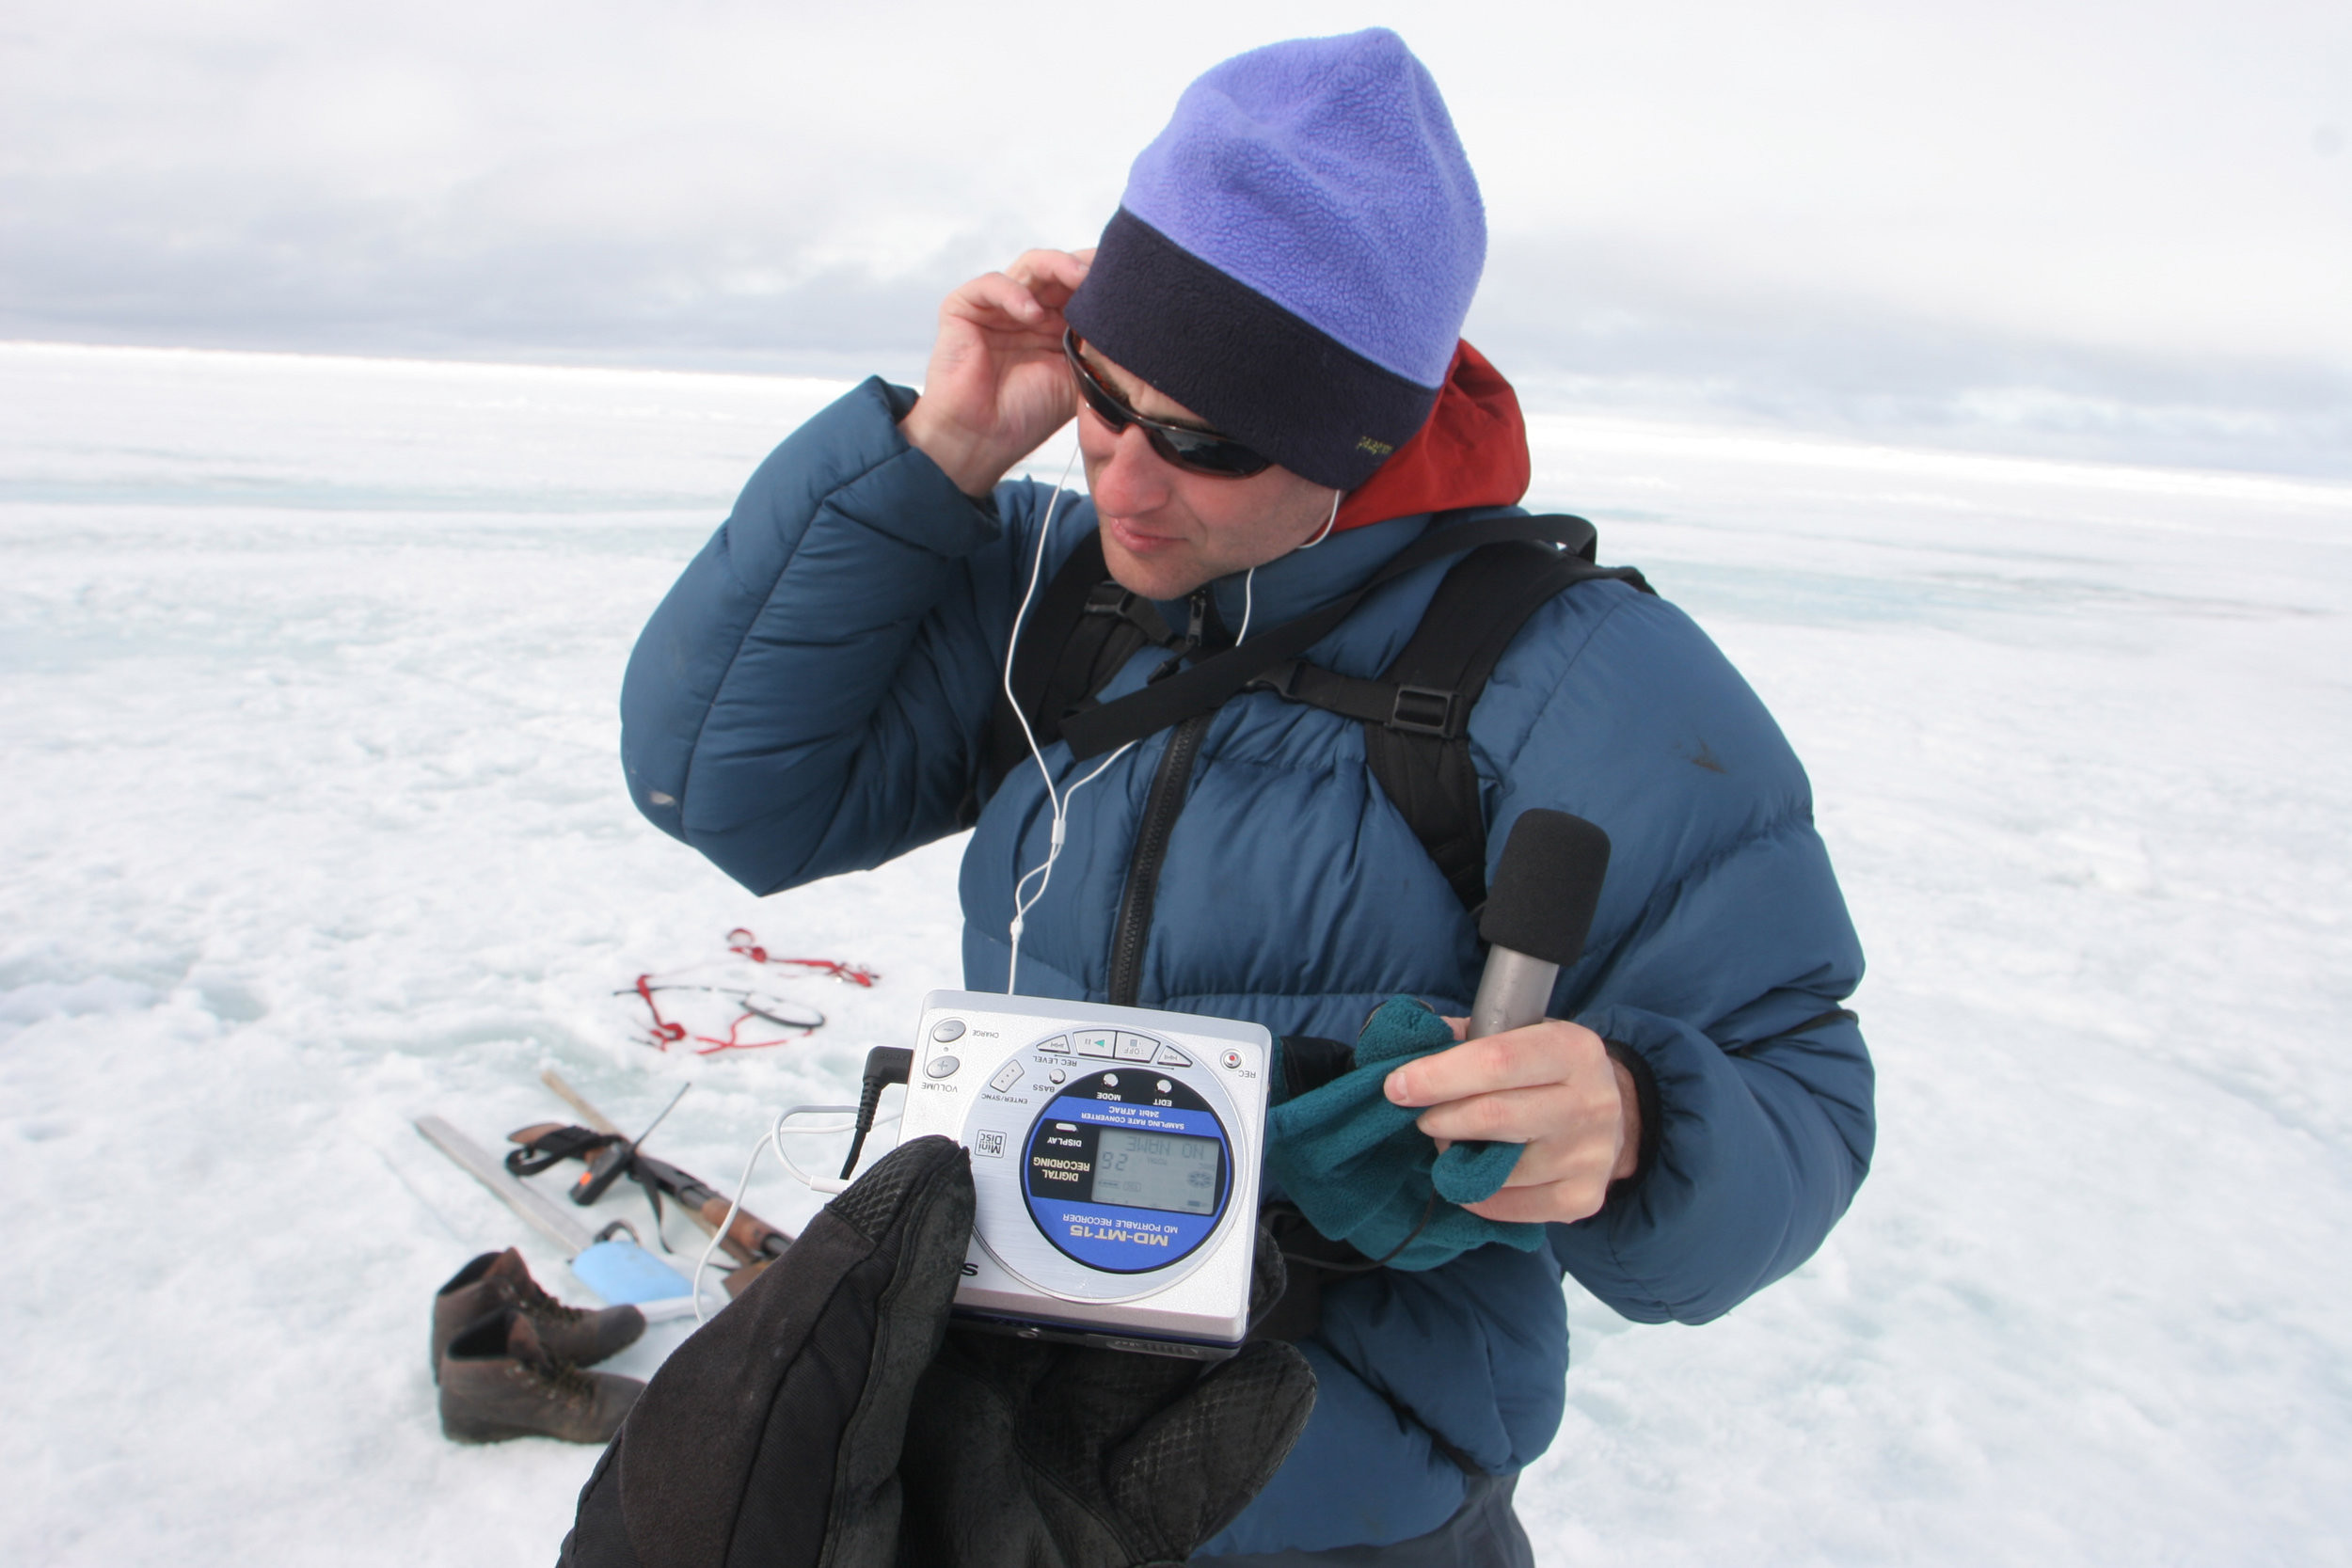 Craig Welch prepares to interview scientists at the edge of the frozen Arctic Ocean outside Barrow, Alaska. (Photo by Steve Ringman, The Seattle Times)